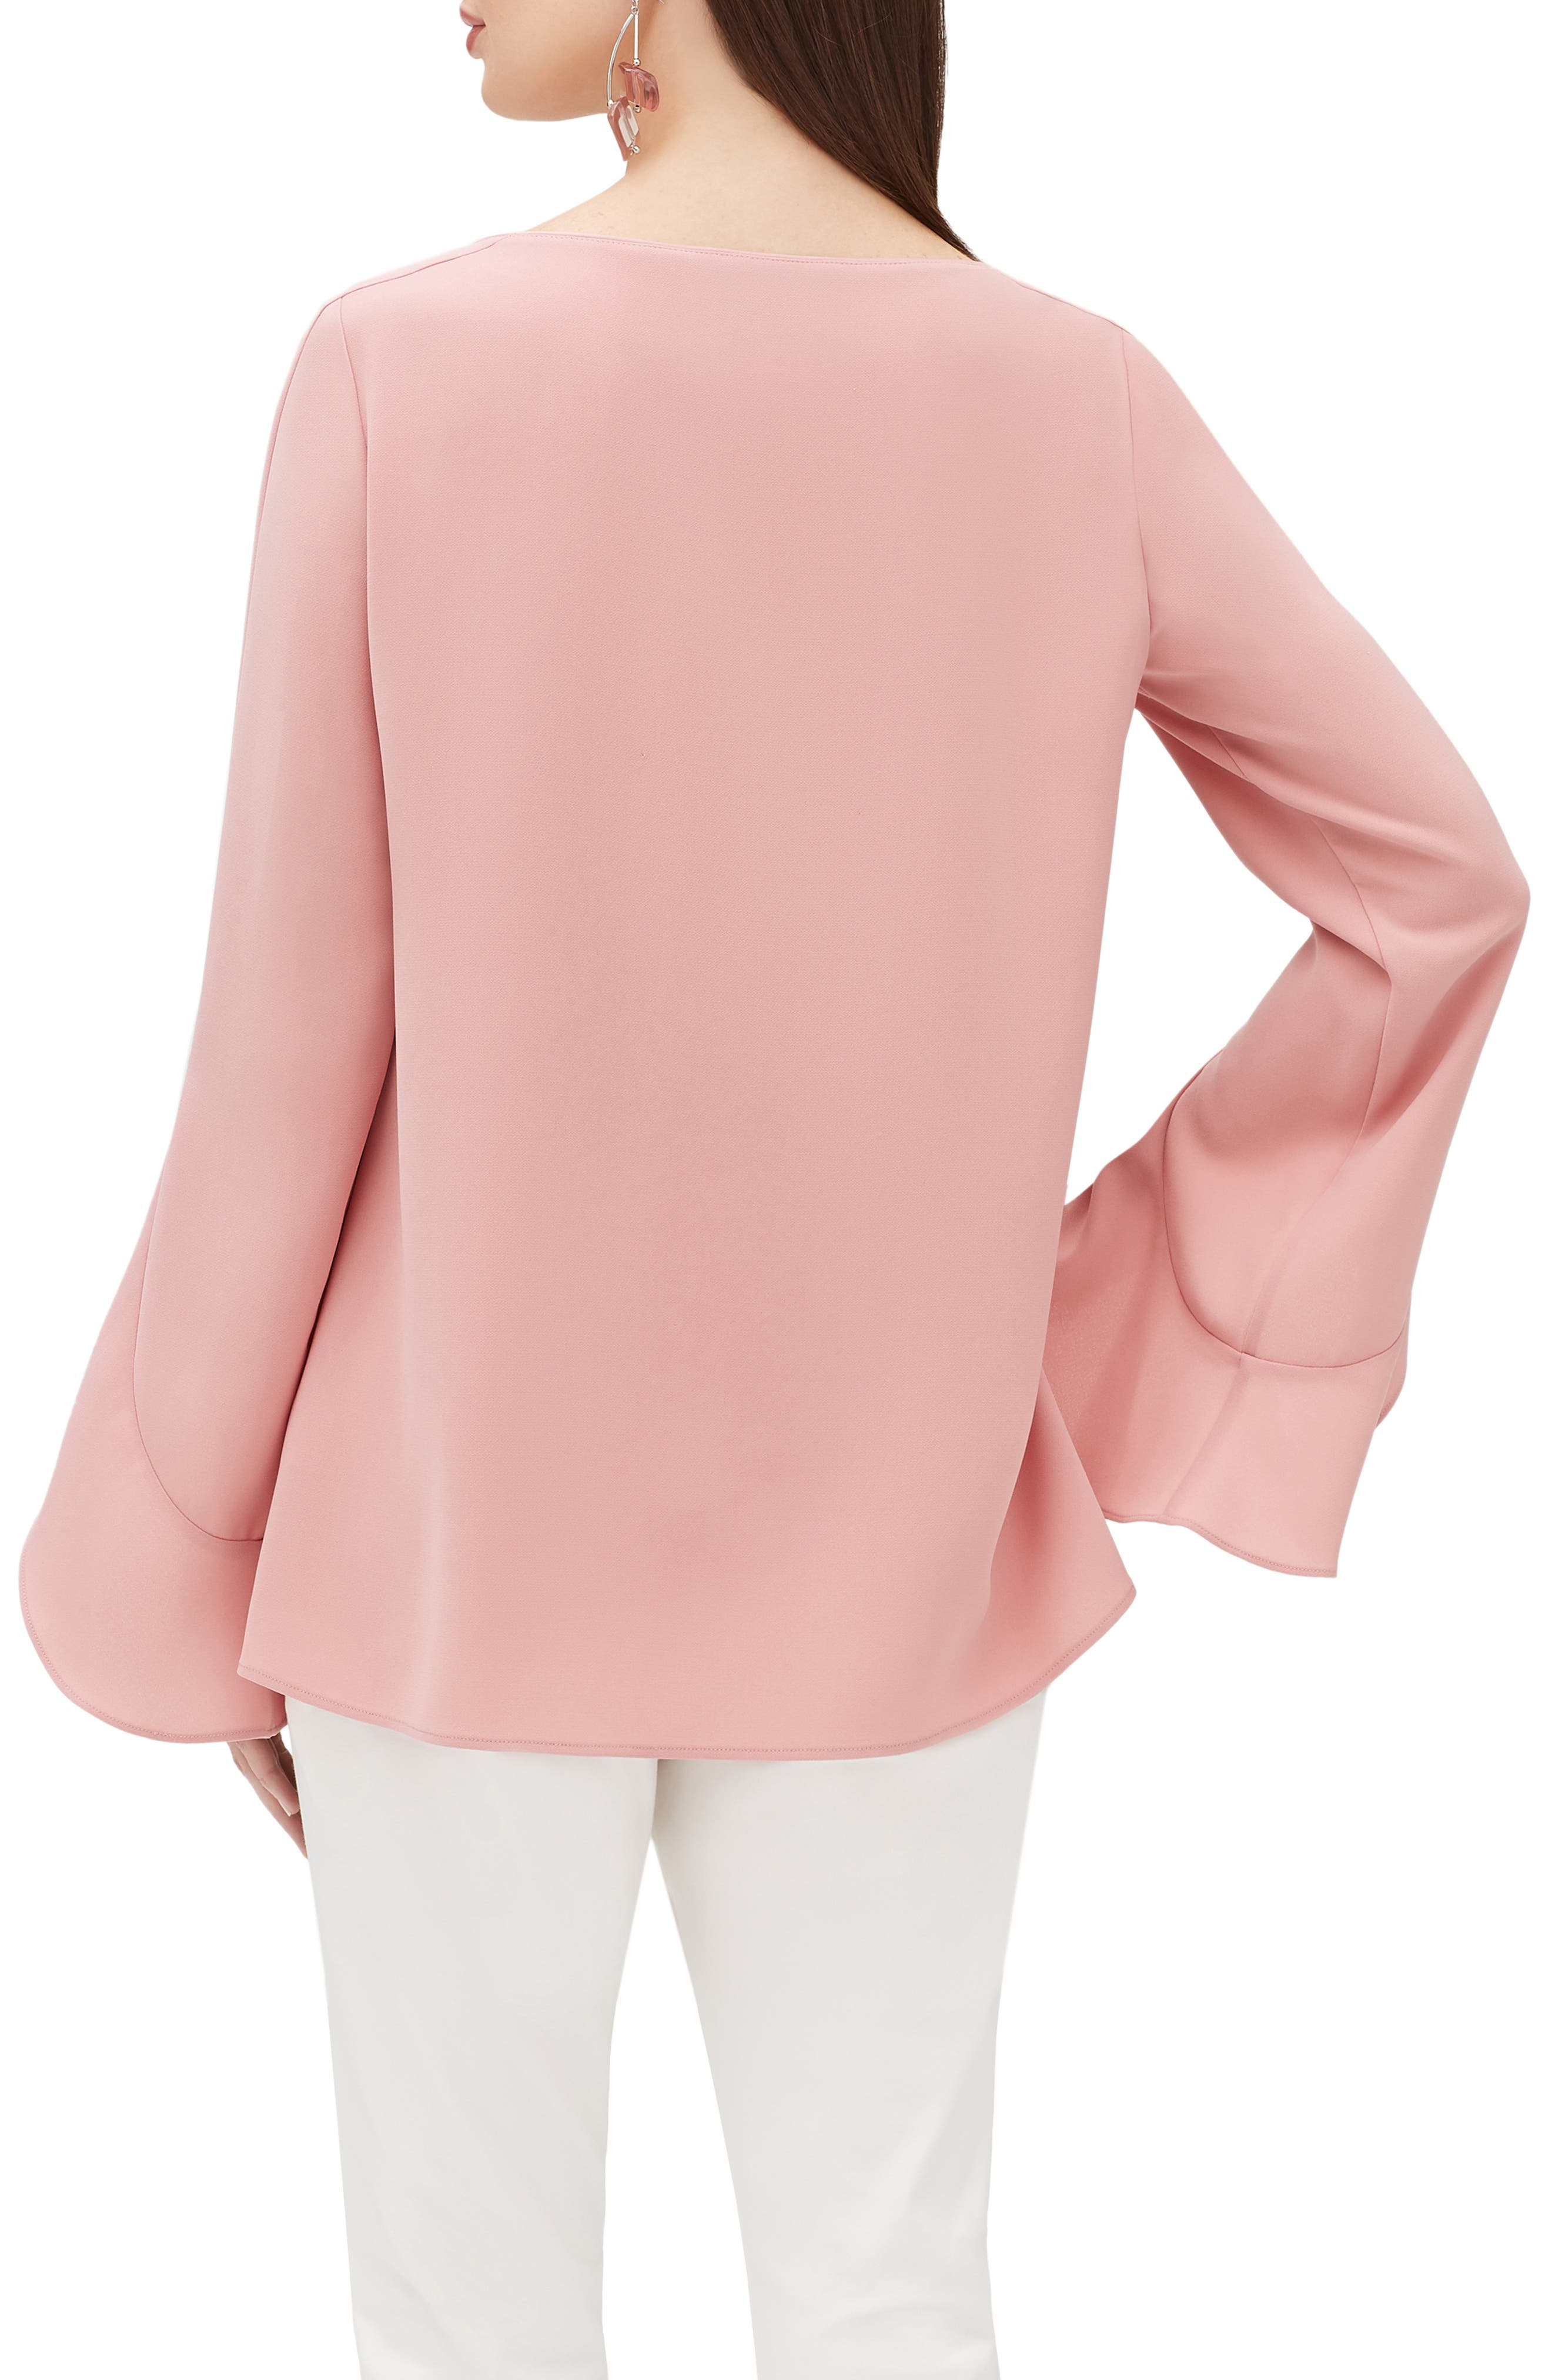 LAFAYETTE 148 NEW YORK,                             Emory Finesse Crepe Blouse,                             Alternate thumbnail 2, color,                             650